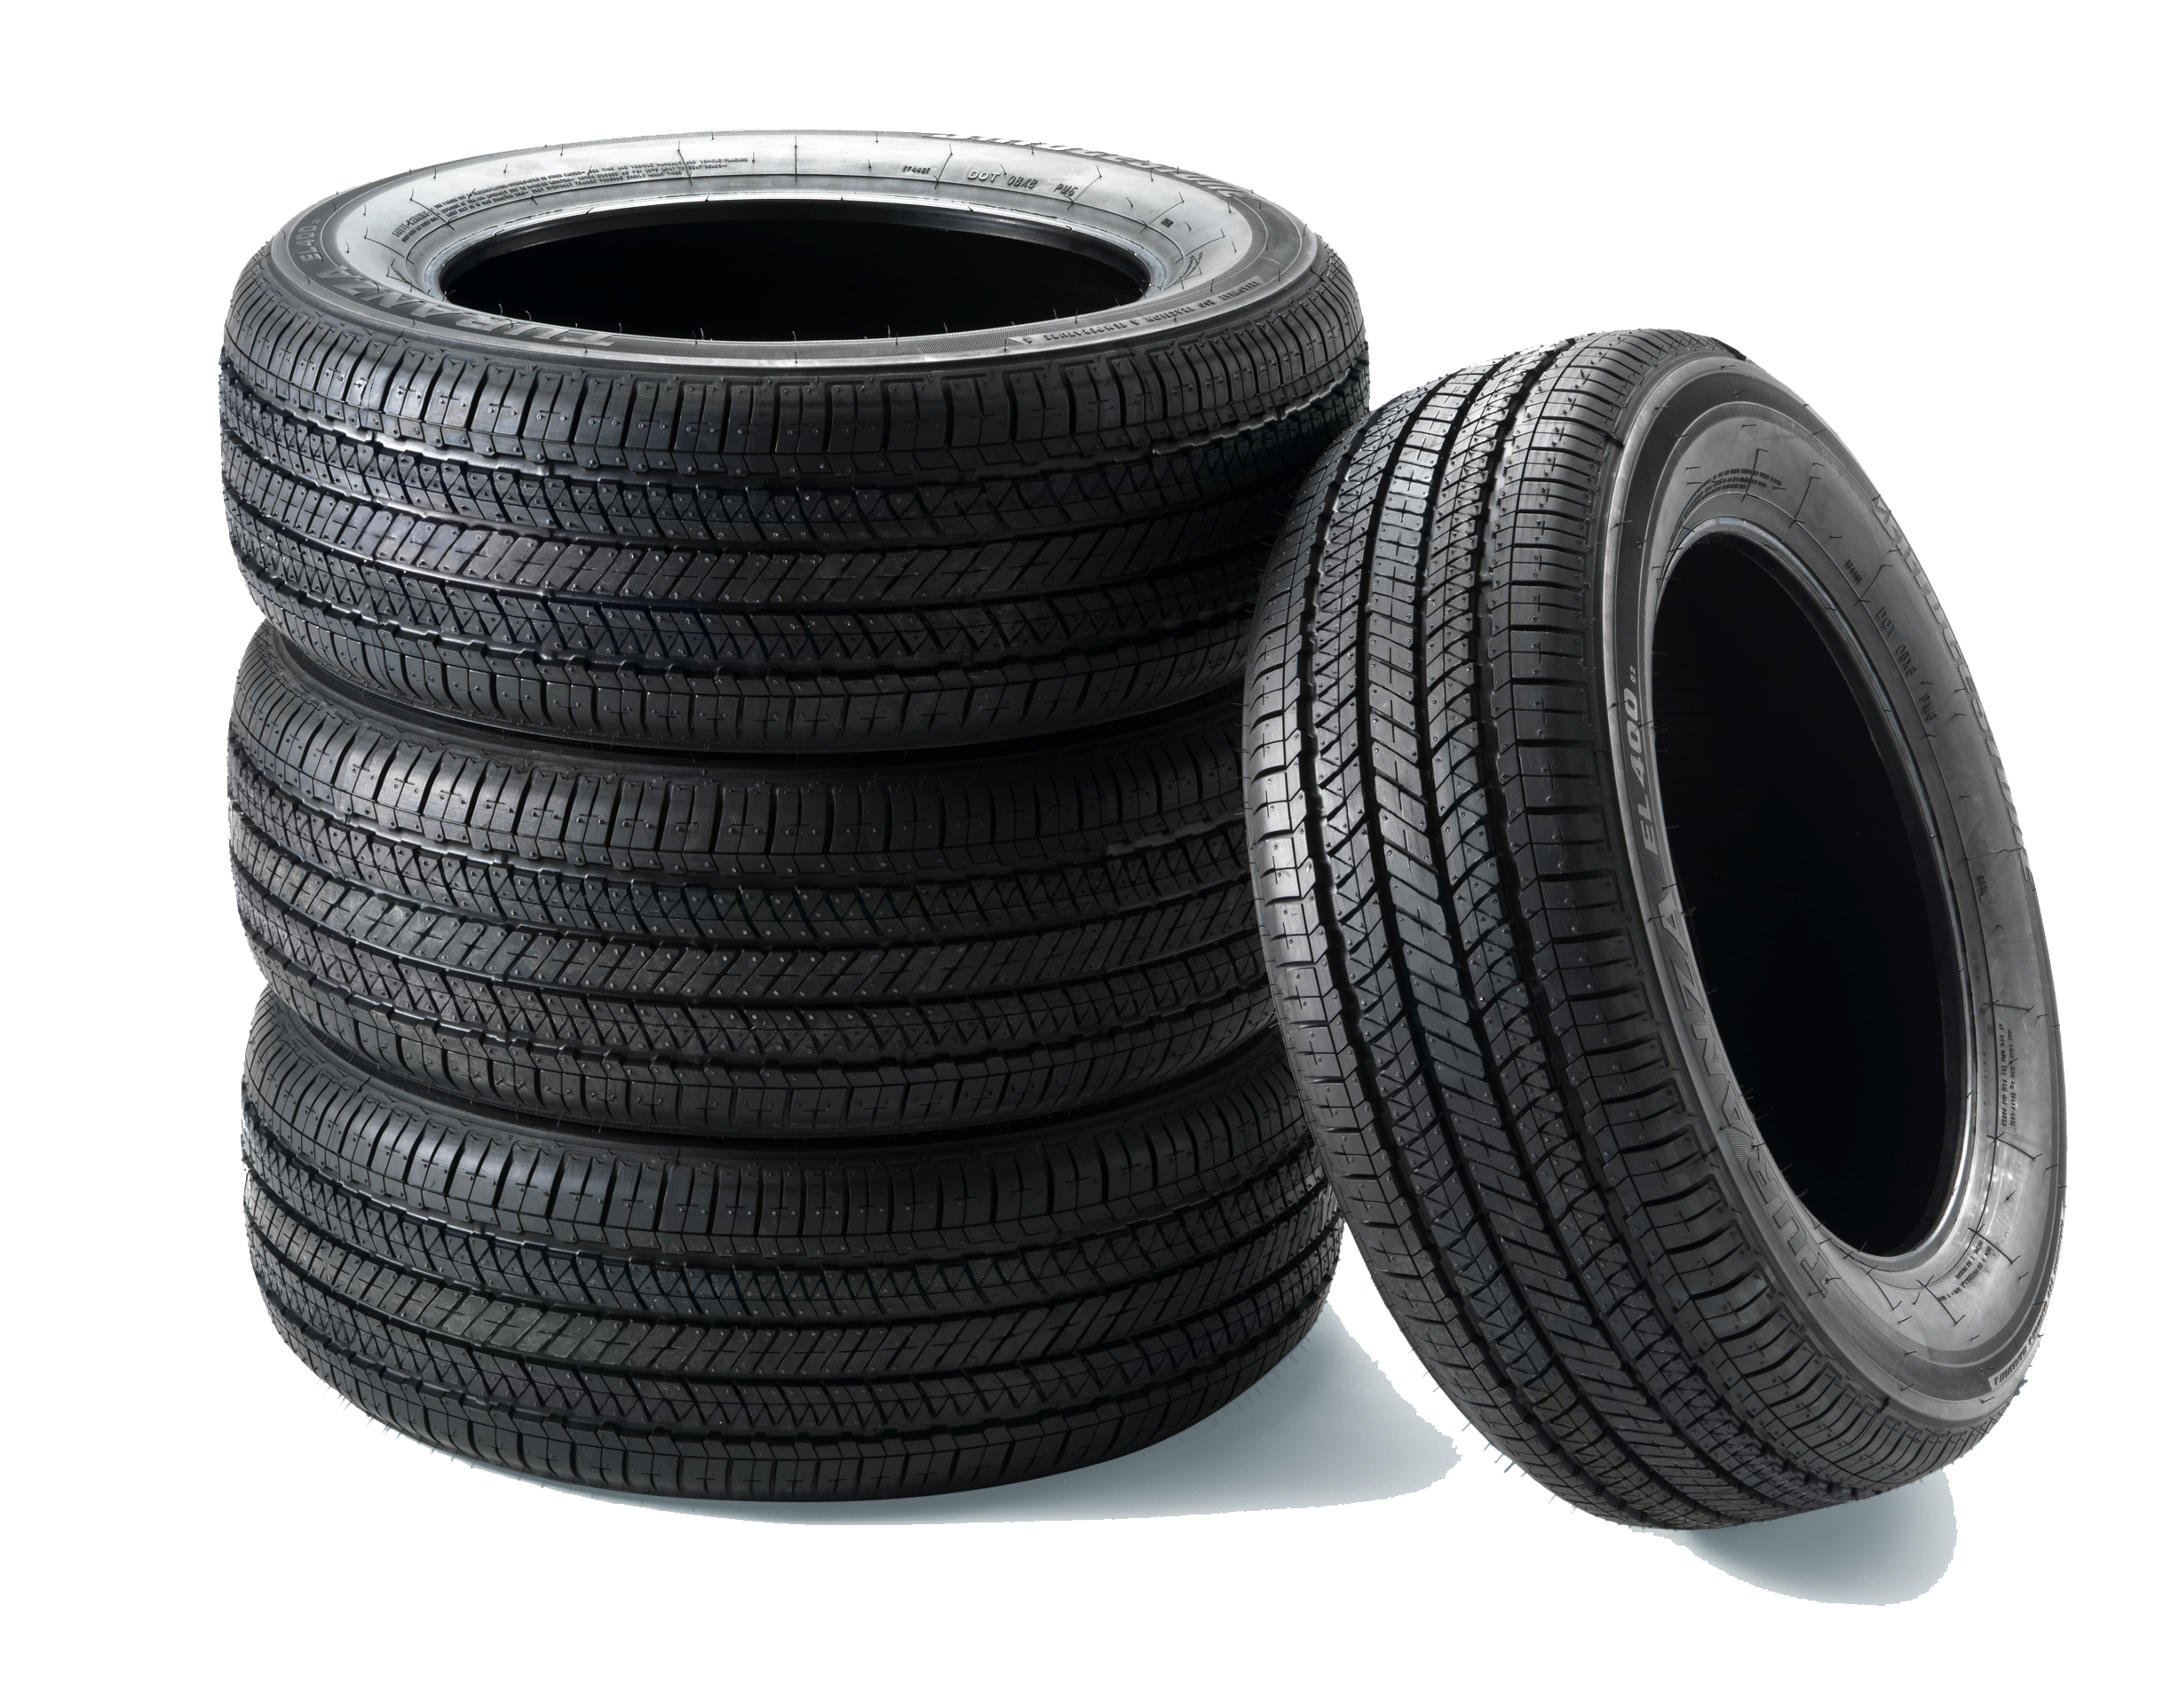 Tire images free download. Png tires picture transparent download